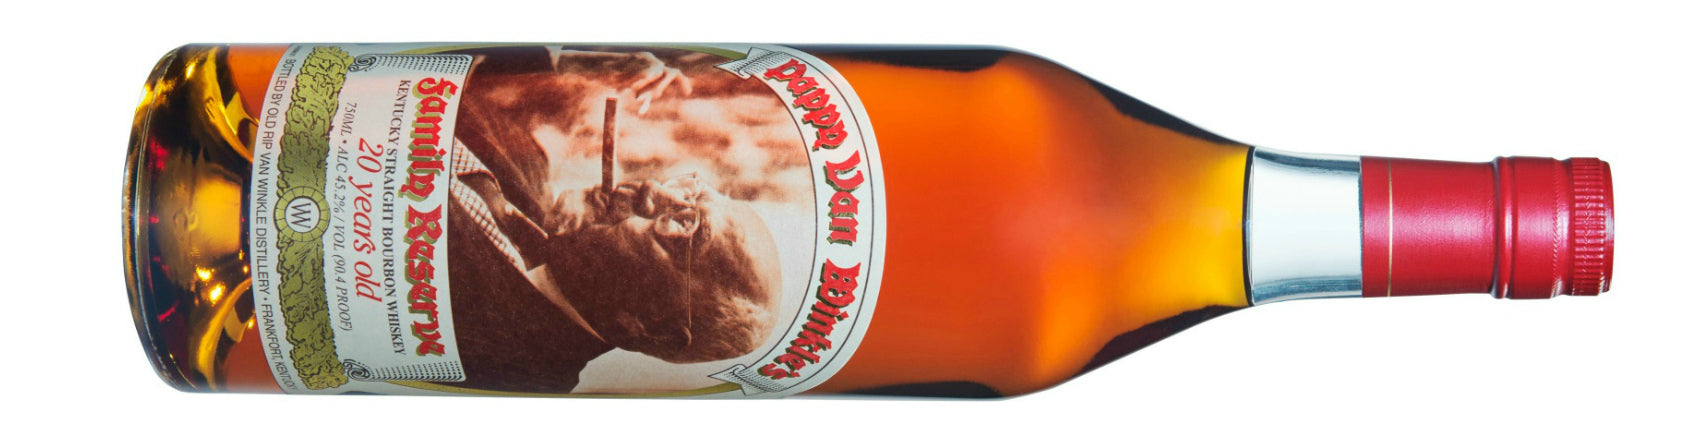 Pappy Van Winkle Family Reserve 20 year bourbon